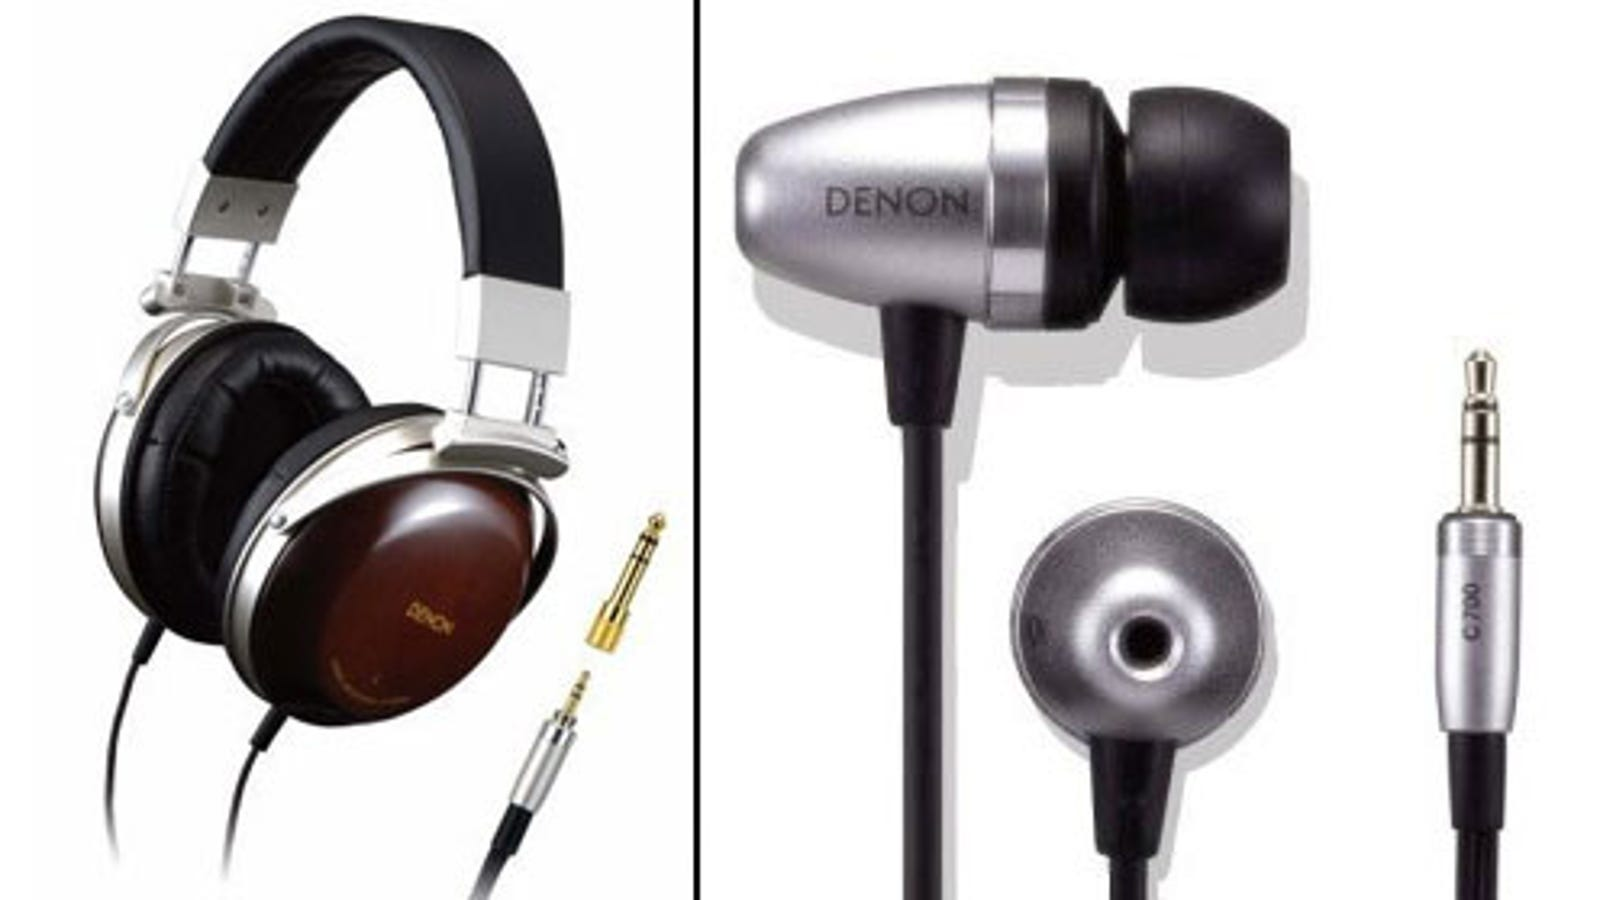 kids wireless headphones with cord - Denon Rolls Out Variety of Headphone and Earphone Choices